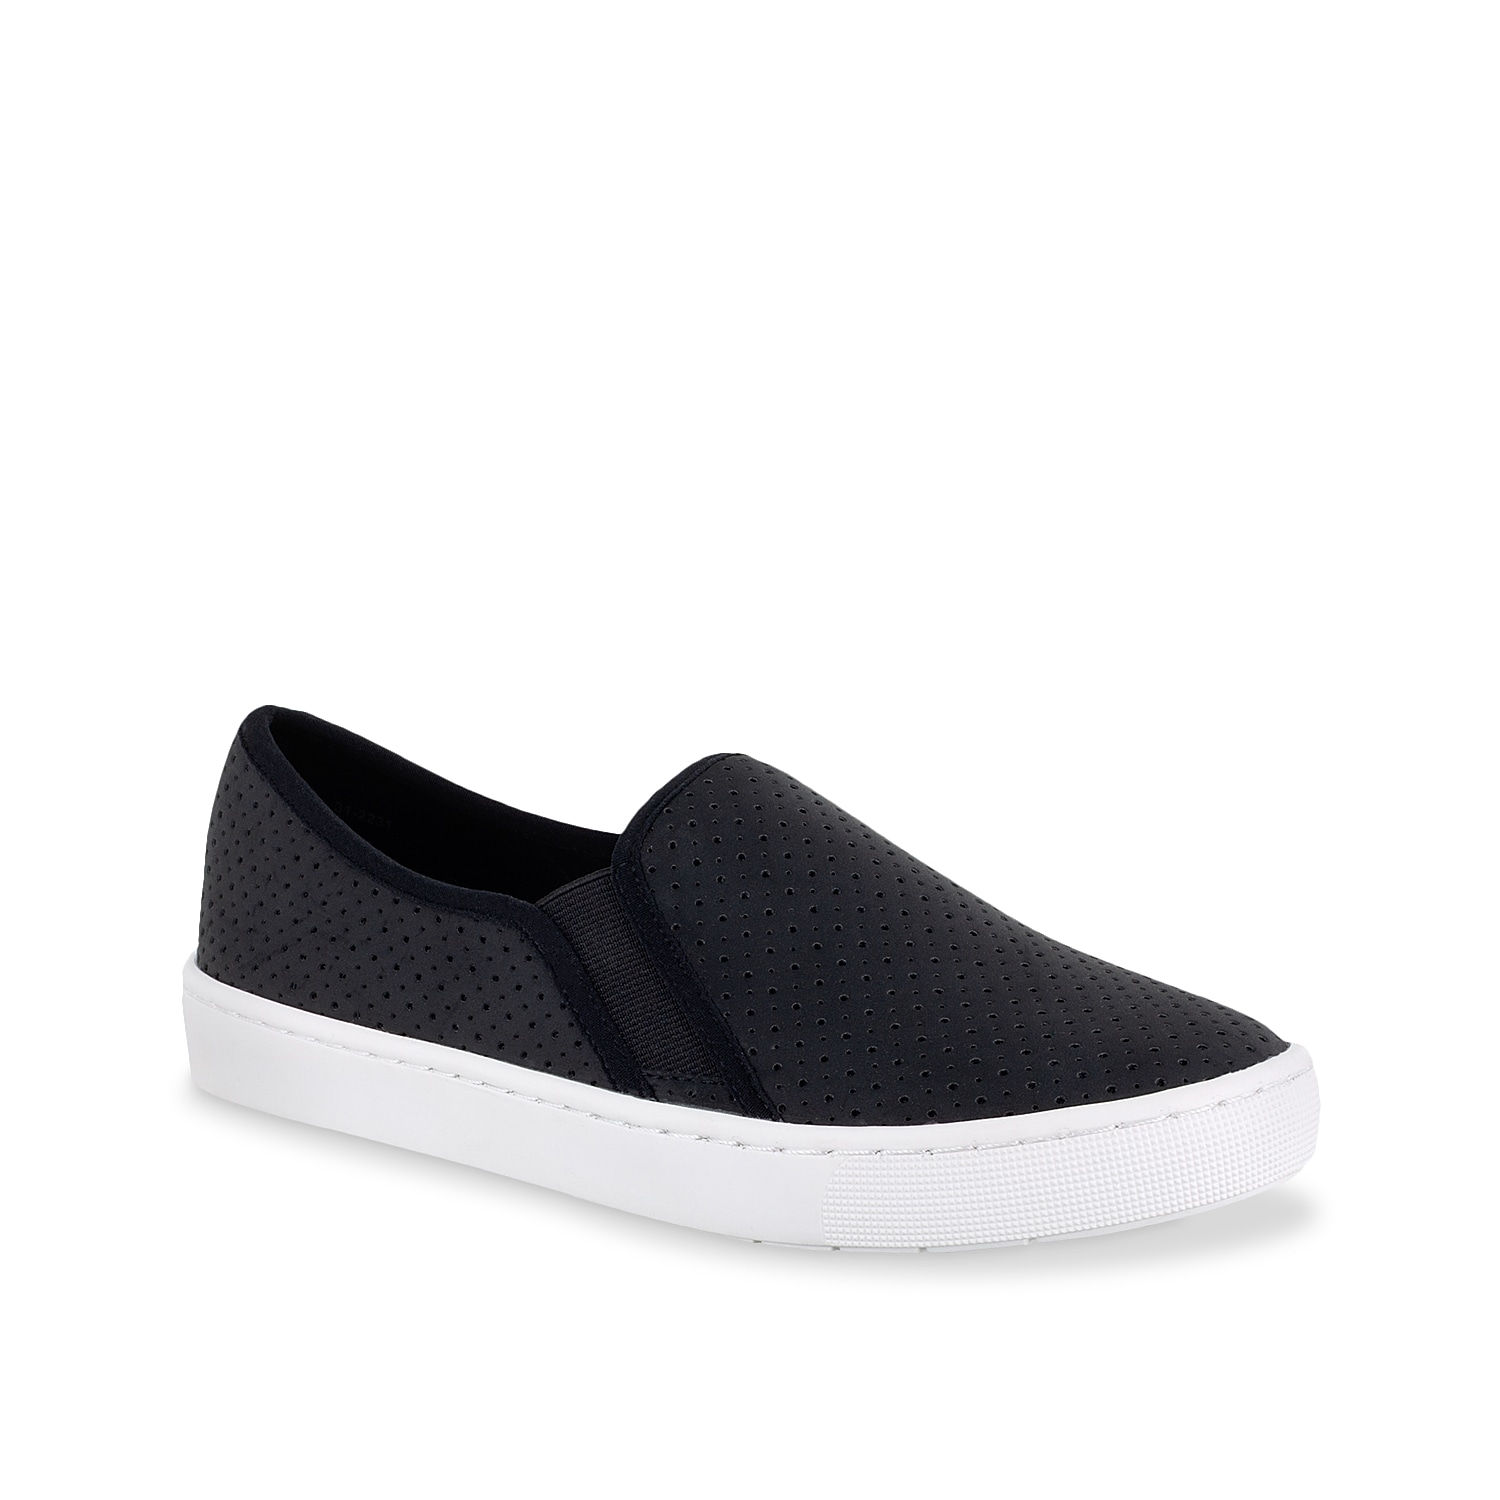 The Sailor slip-on from Easy Street is a must-have for your casual shoe collection. This silhouette is fashioned with dual side gores and a removable ultra-light insole for cushioned steps!